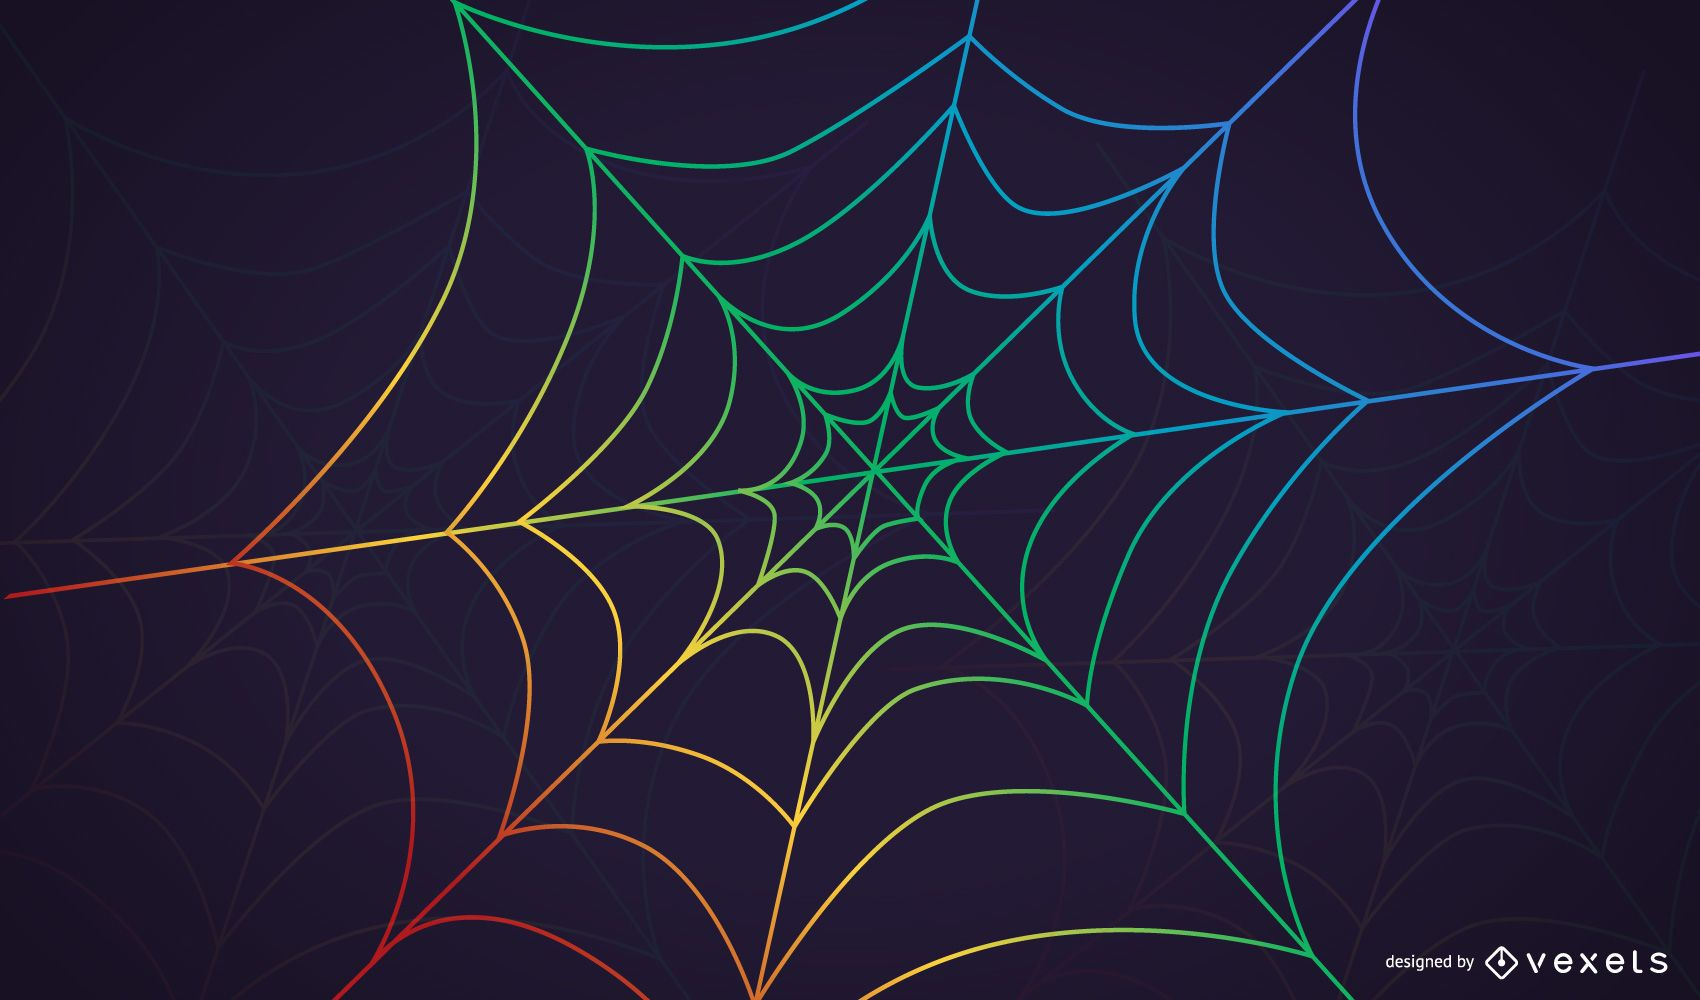 Rainbow Spider Web Background with Dewdrops